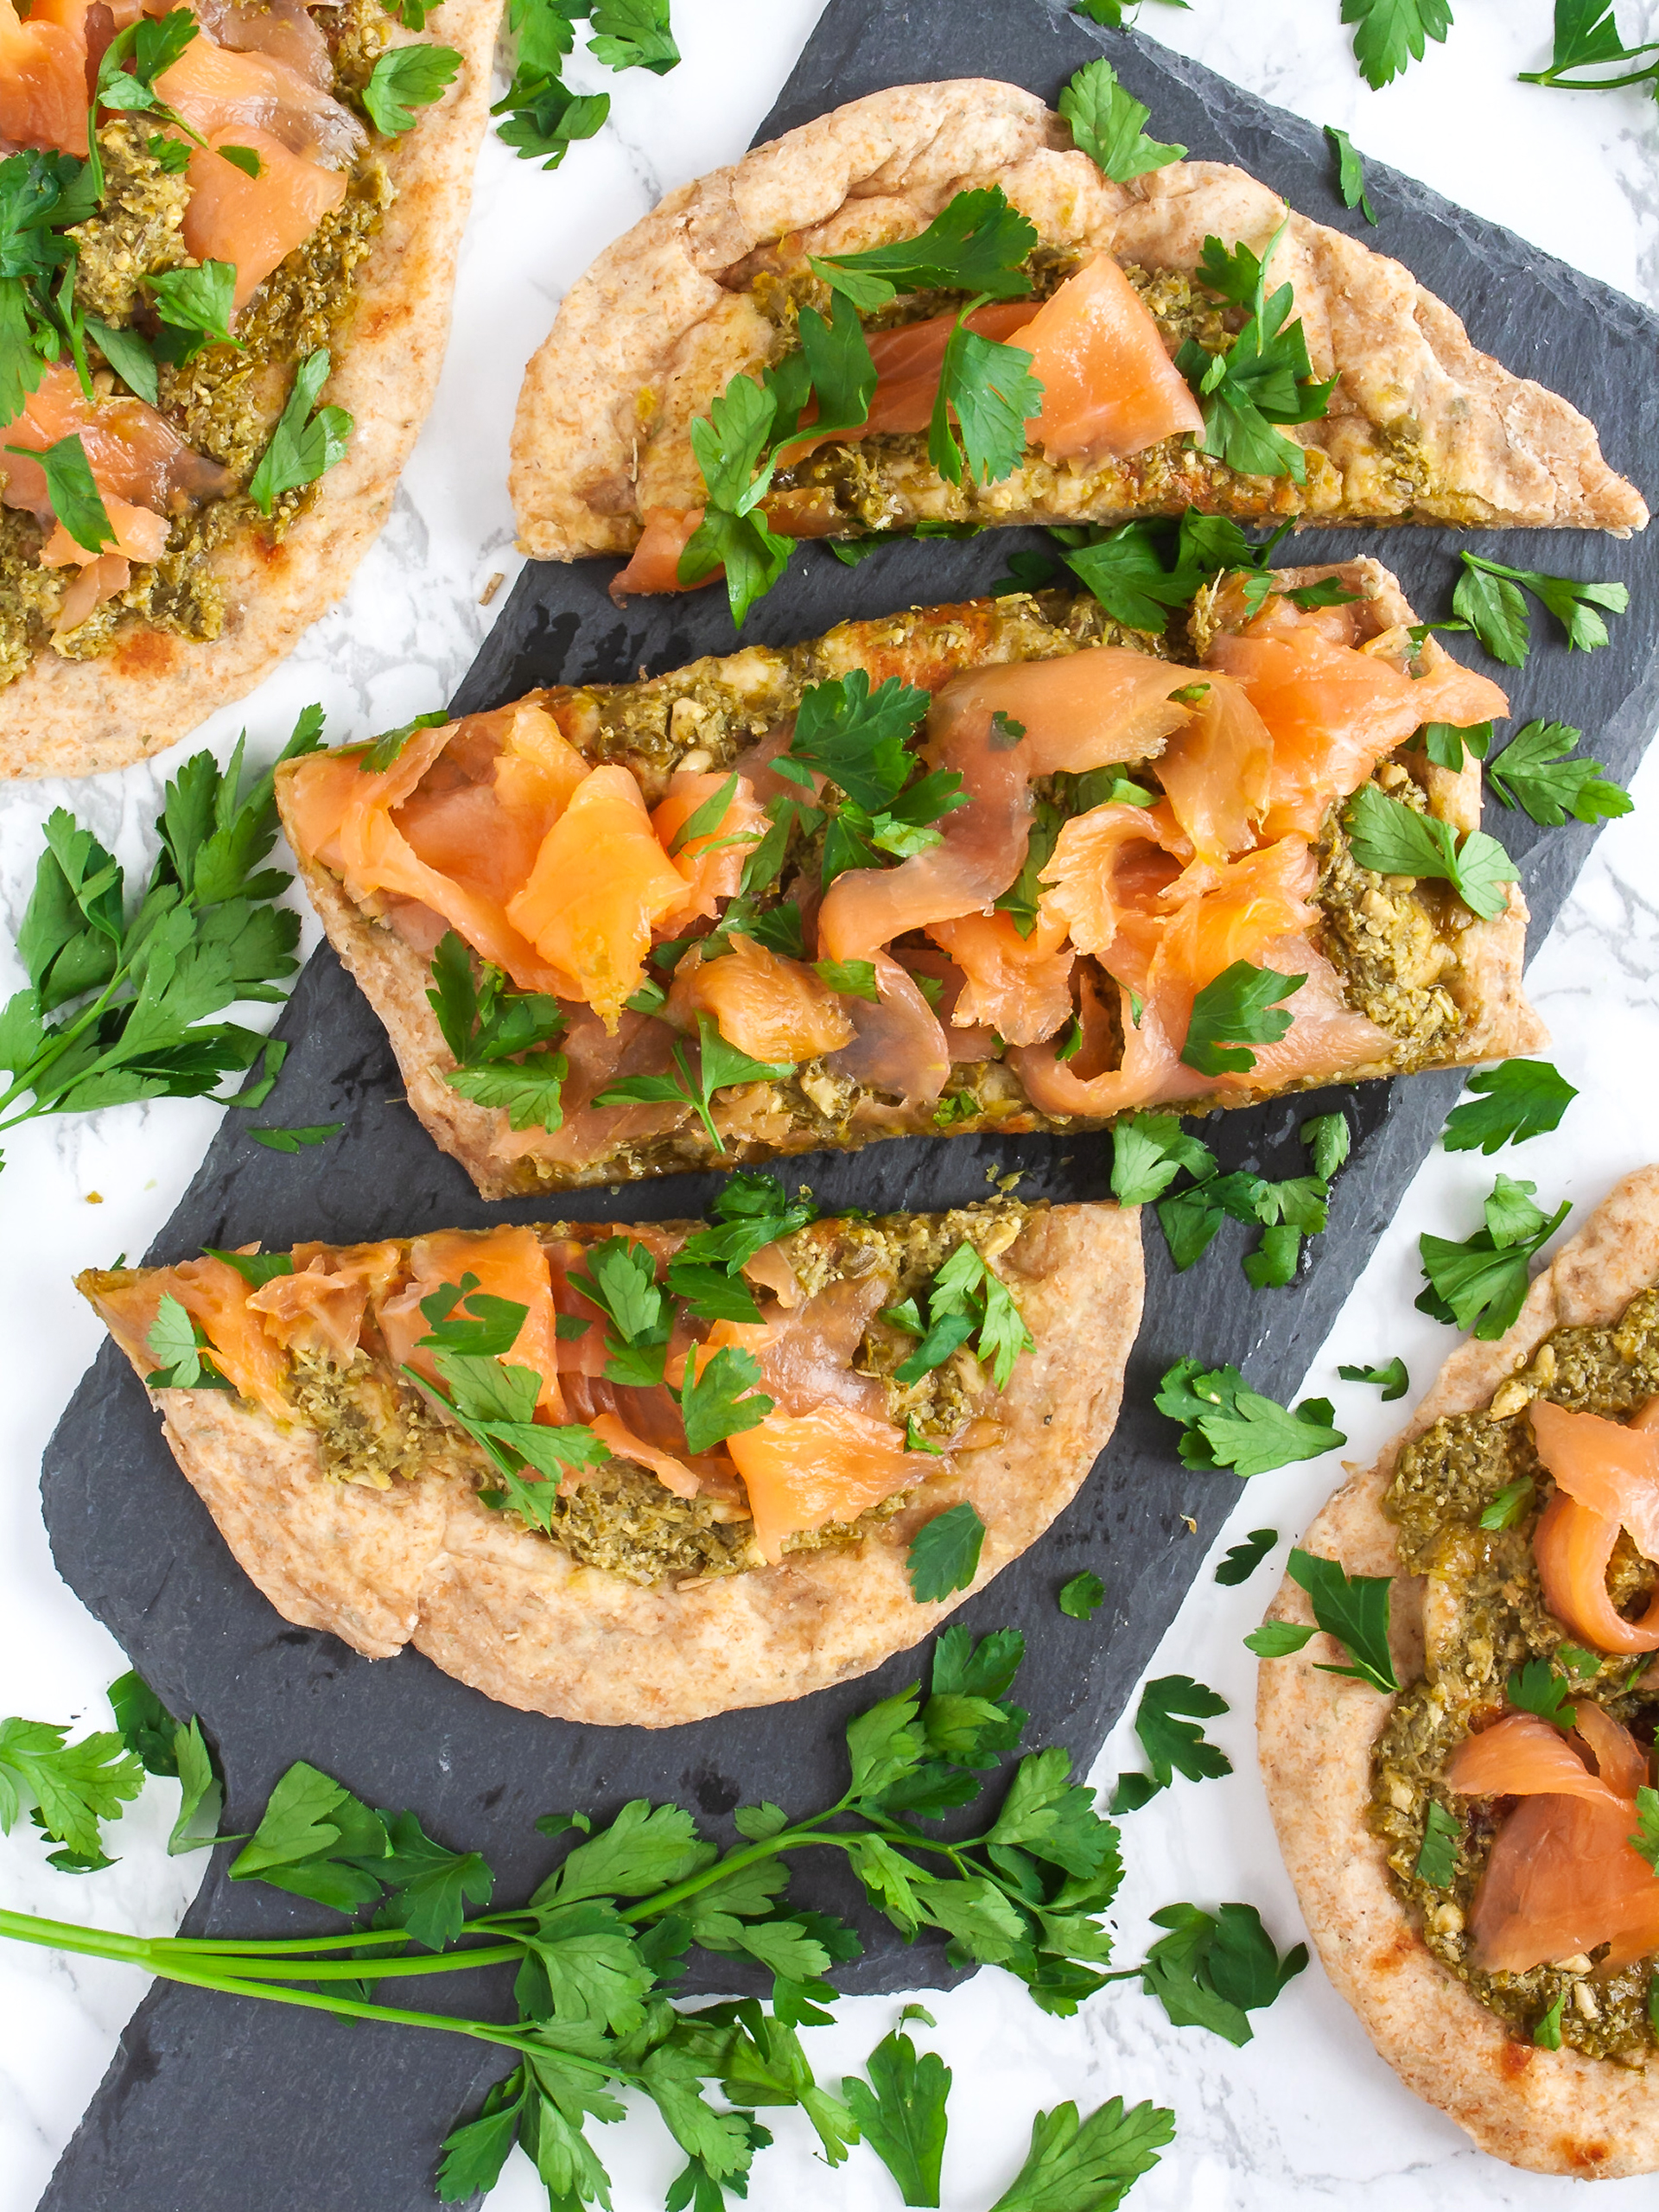 Smoked Salmon and Pesto Wholemeal Flatbread Thumbnail